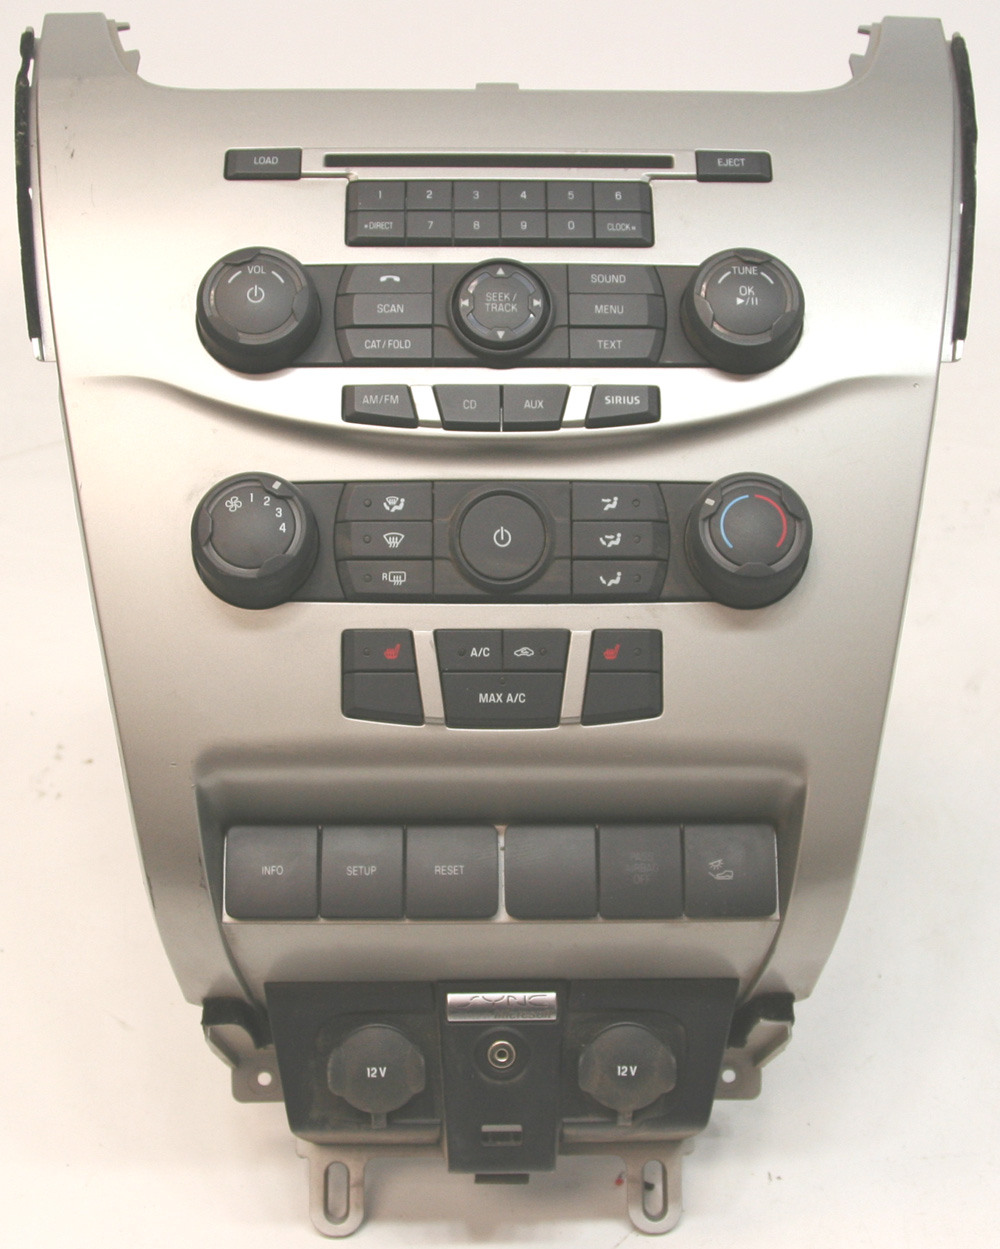 2009 ford focus factory stereo 6 disc changer cd player. Black Bedroom Furniture Sets. Home Design Ideas